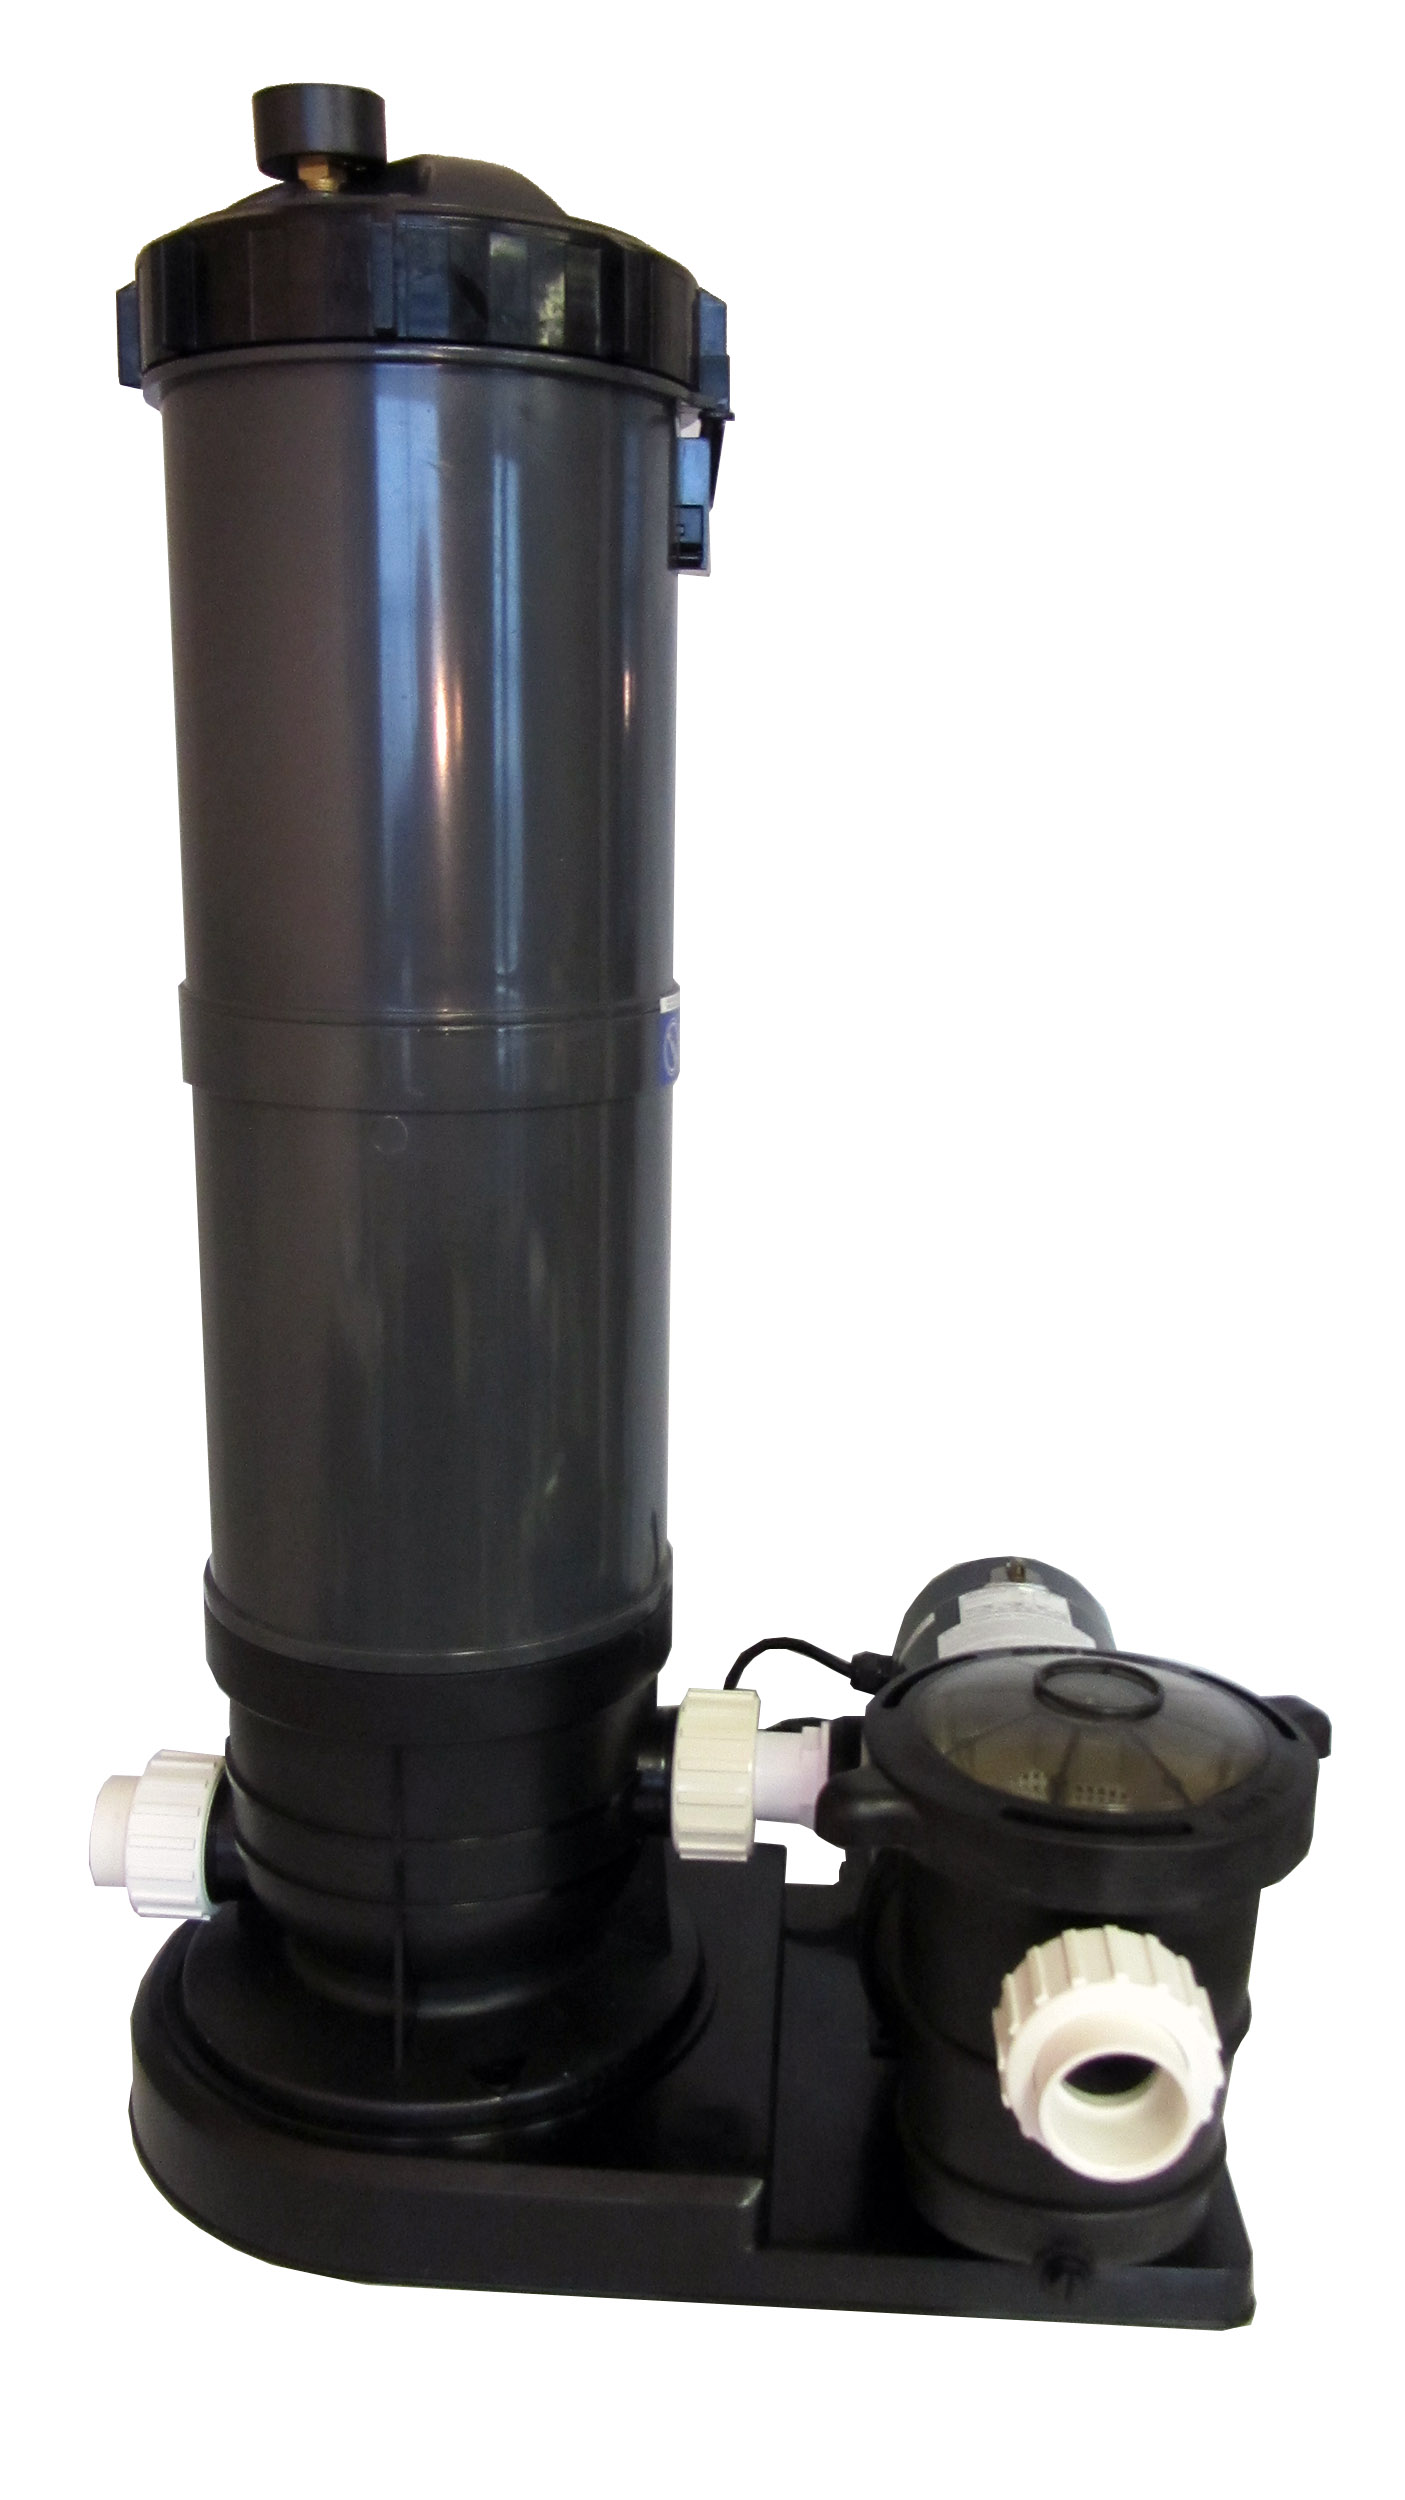 Above Ground Swimming Pool Cartridge Filter System With 2 Speed Pump 1 5 Hp